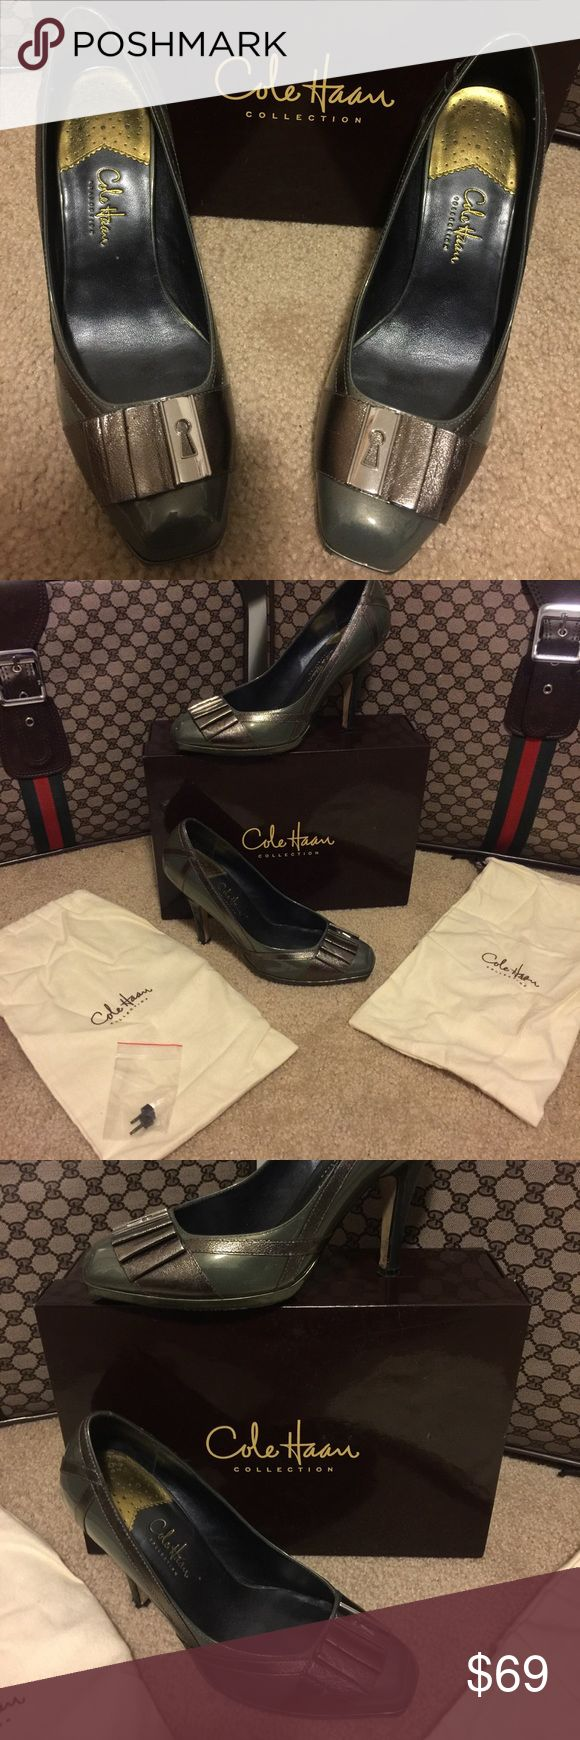 "Cole Haan ""Nike Air"" Edition Size 9.5 B 5"" heel Jayma Air Pump - see gold tag on bottom. Color Gunmetal Paten D20775. Come with box 📦 2 dust covers and 2 heel replacement plugs Cole Haan Shoes Heels"